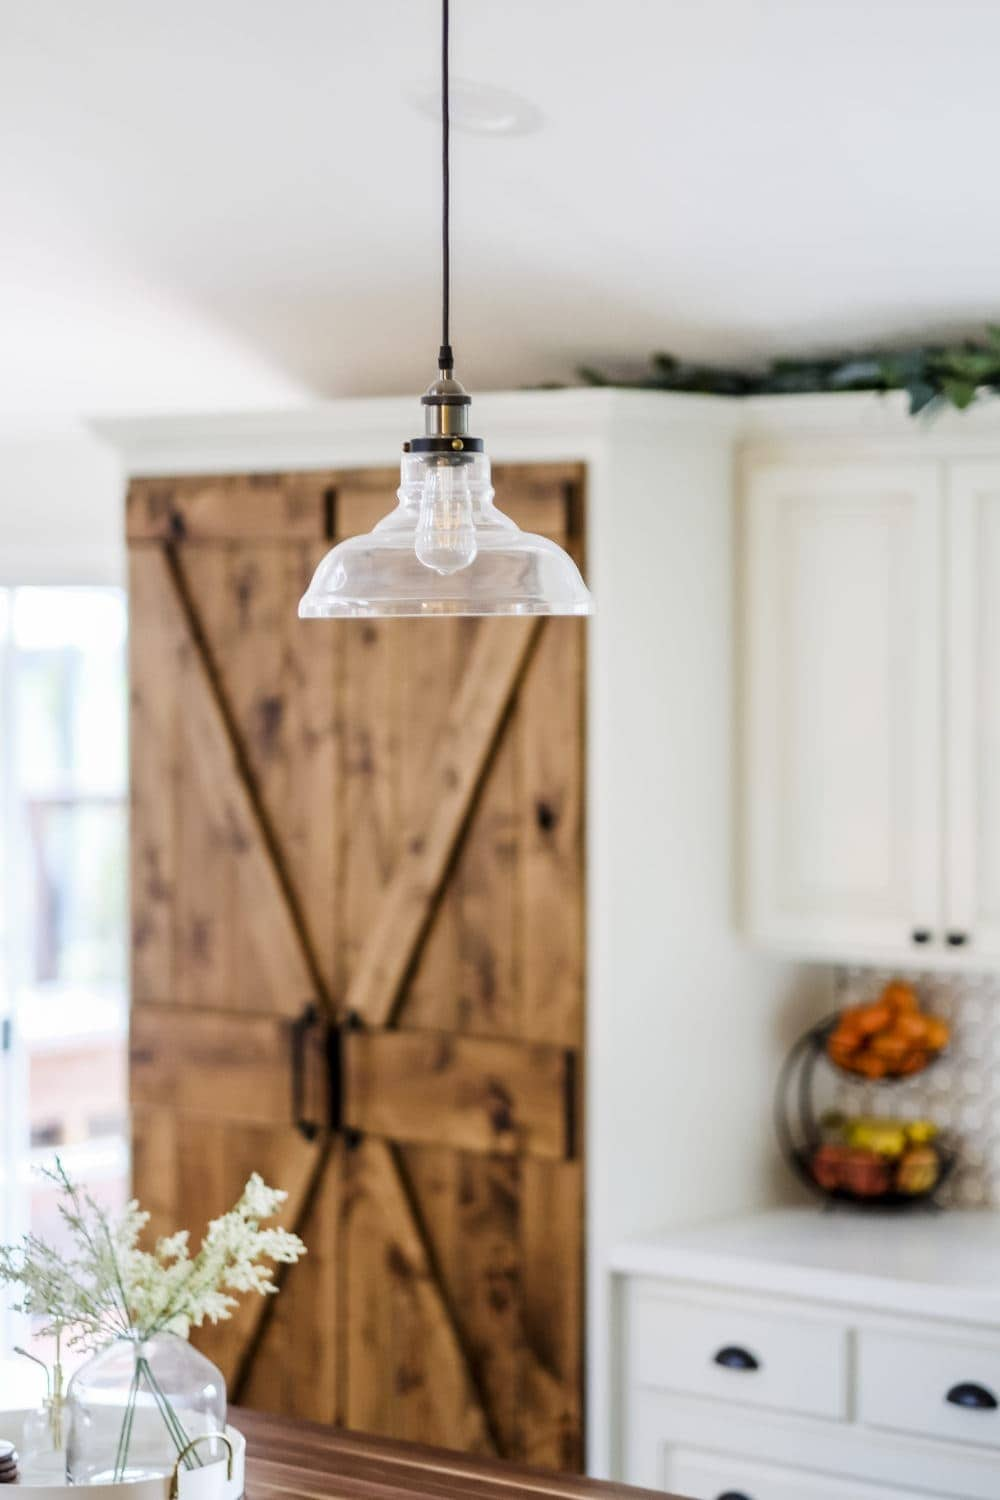 Glass pendant light hanging in white farmhouse kitchen on a budget